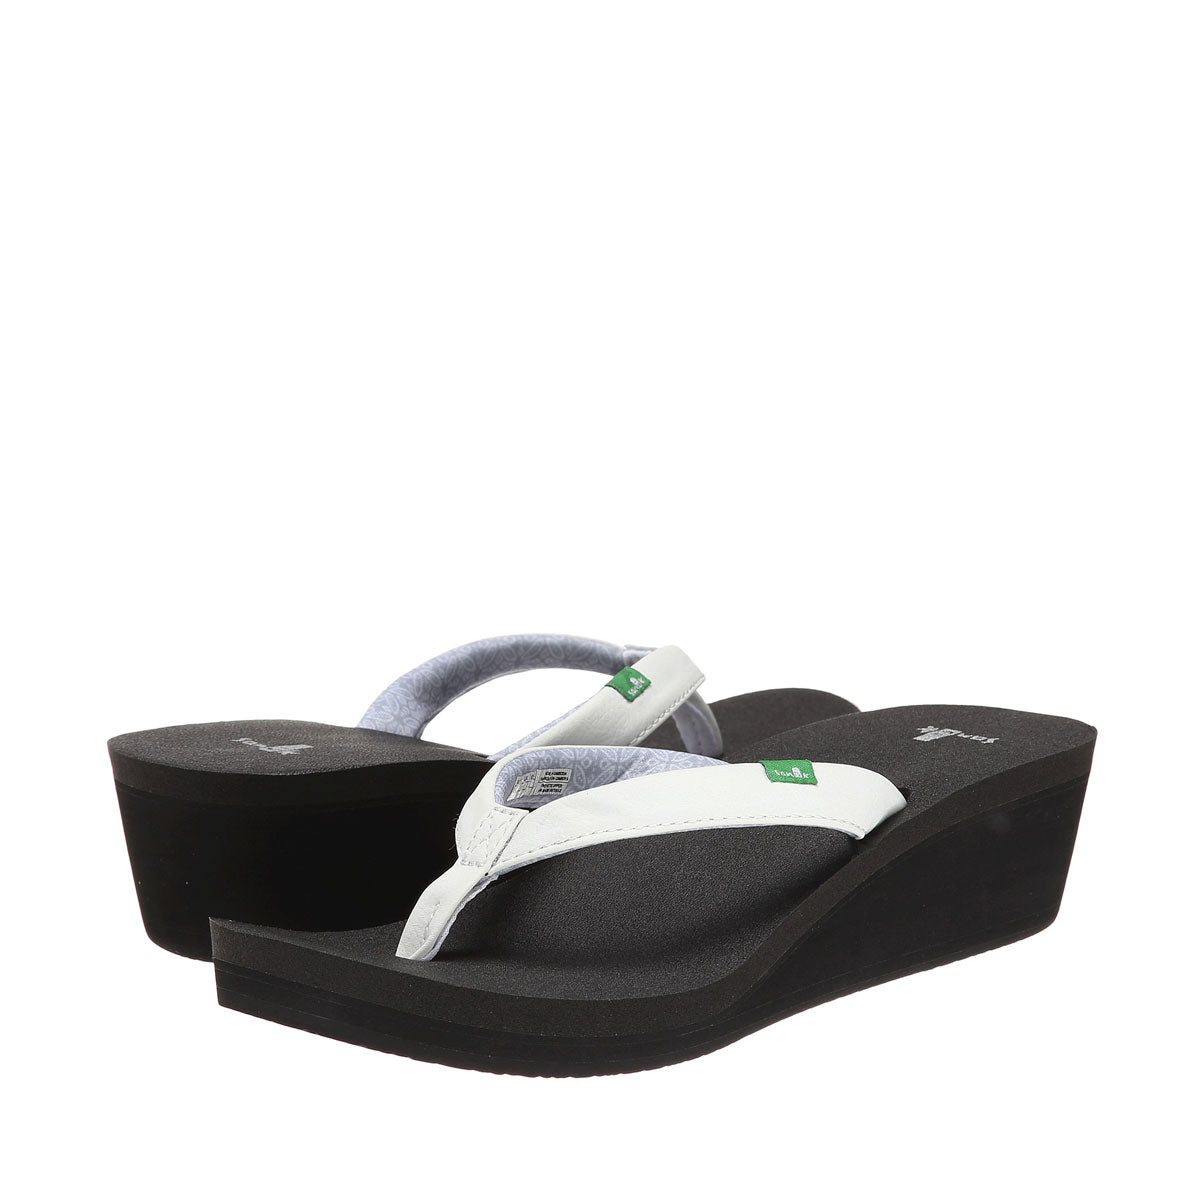 Sanuk Yoga Zen Wedge-White